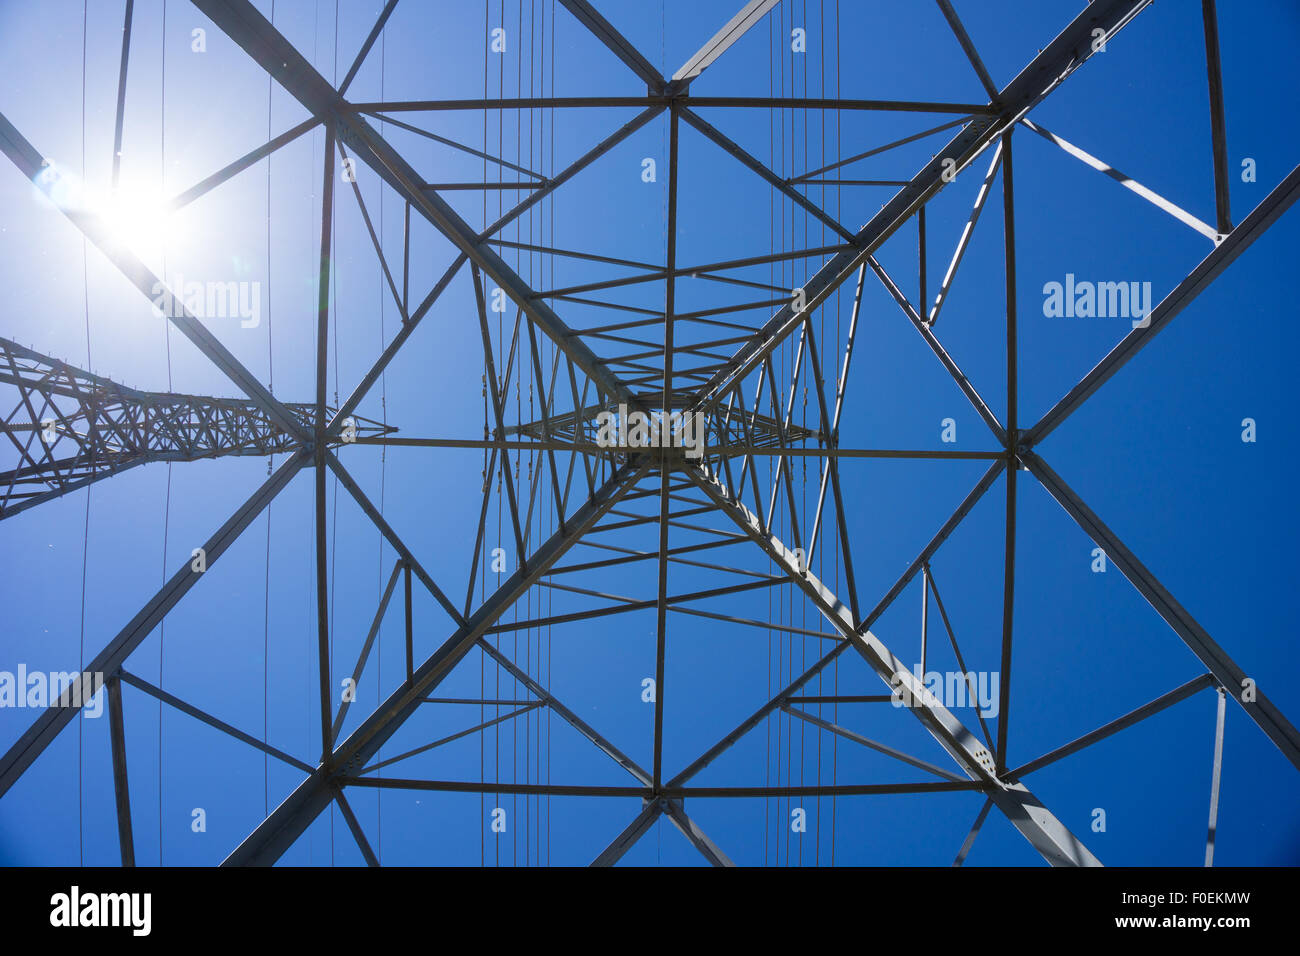 View from inside a metal electric tower. Stock Photo